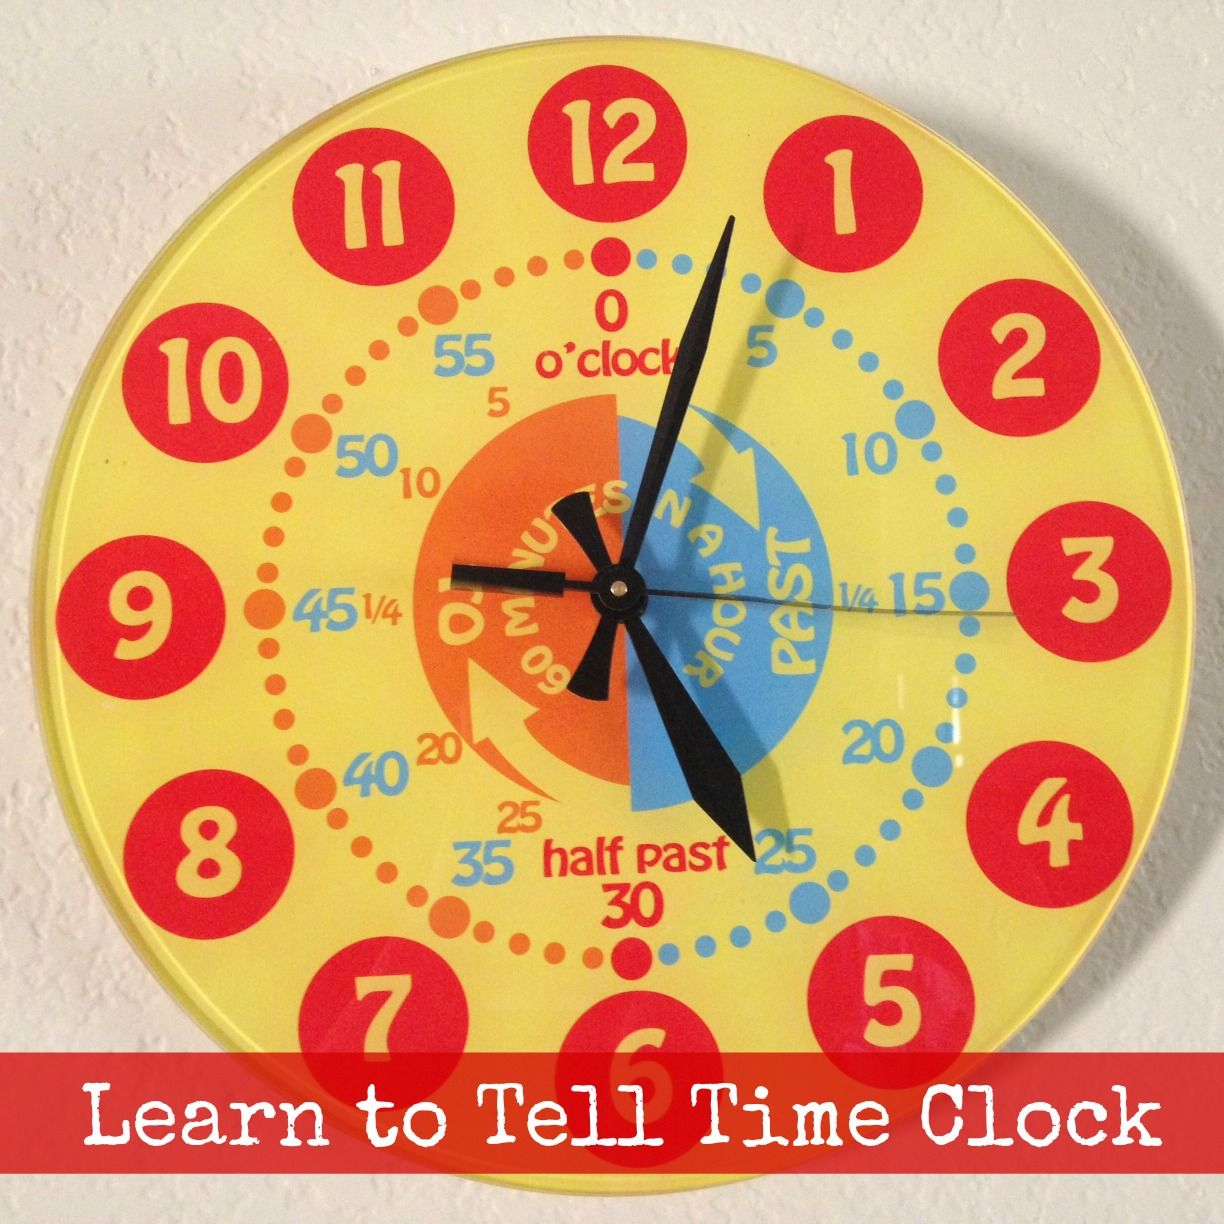 How to Tell Time: 15 Steps (with Pictures) - wikiHow